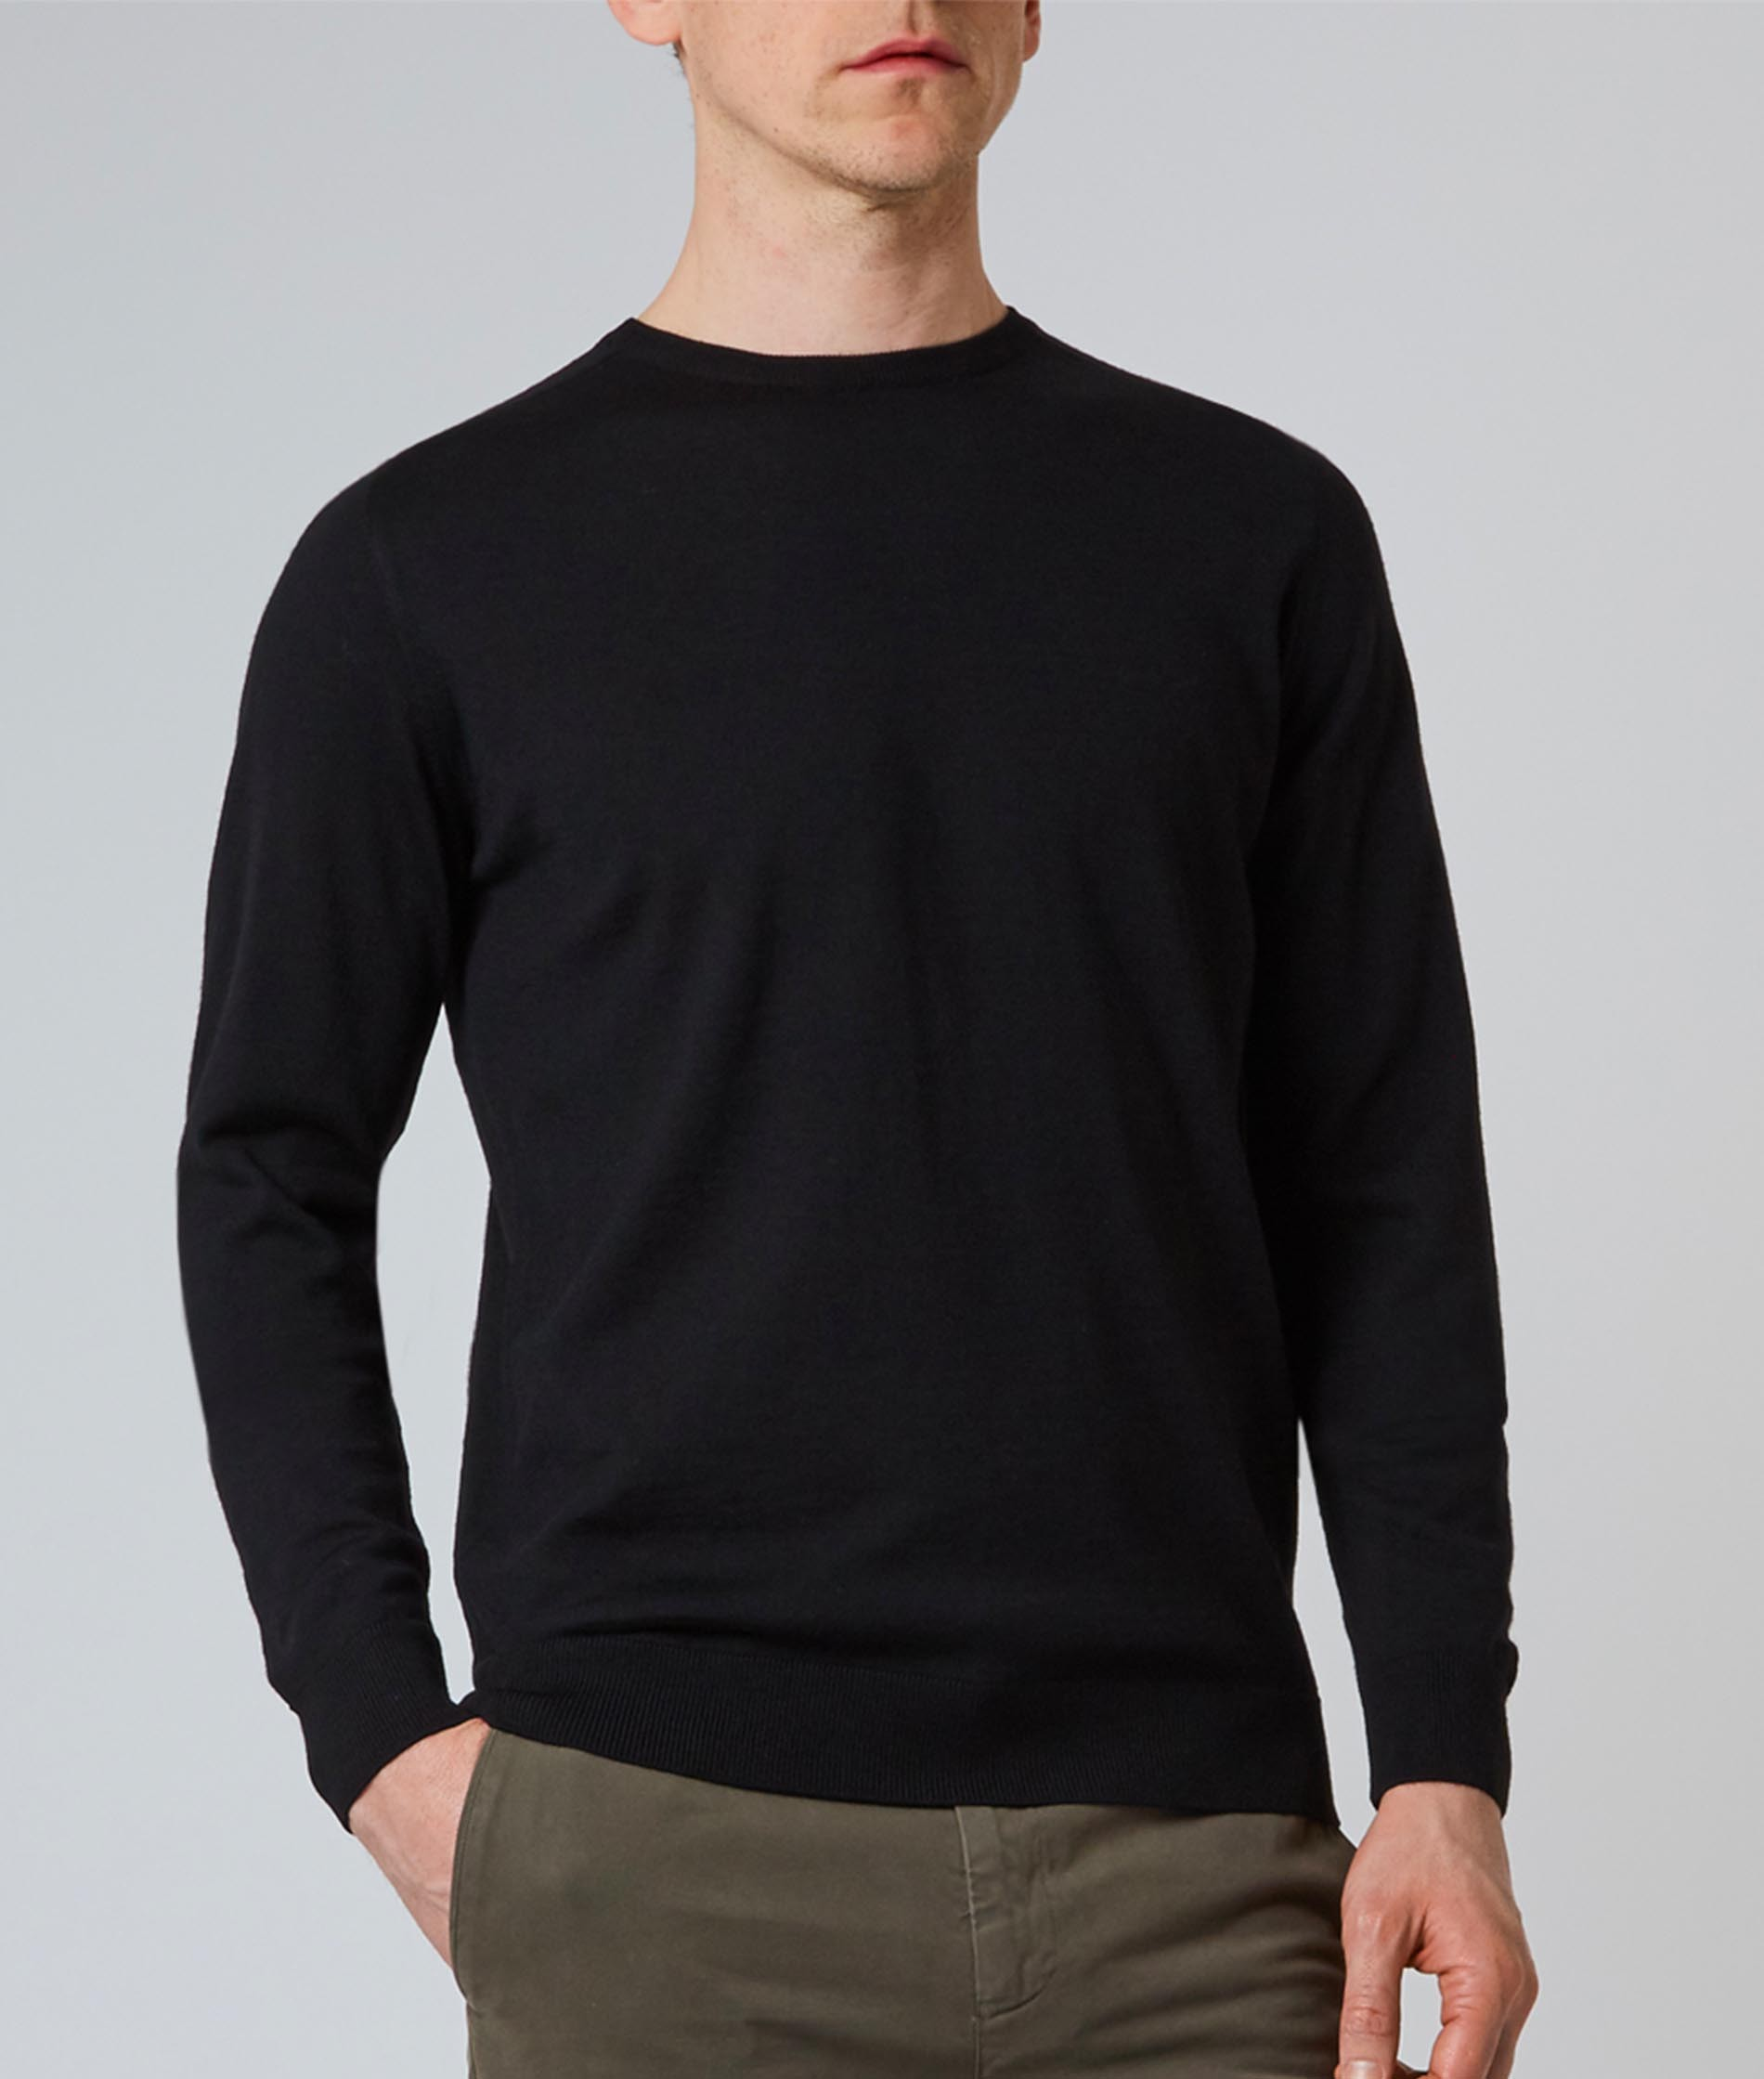 Nigel Hall Black Extra Fine Knit Merino Wool Crew Neck Jumper (Glenn)